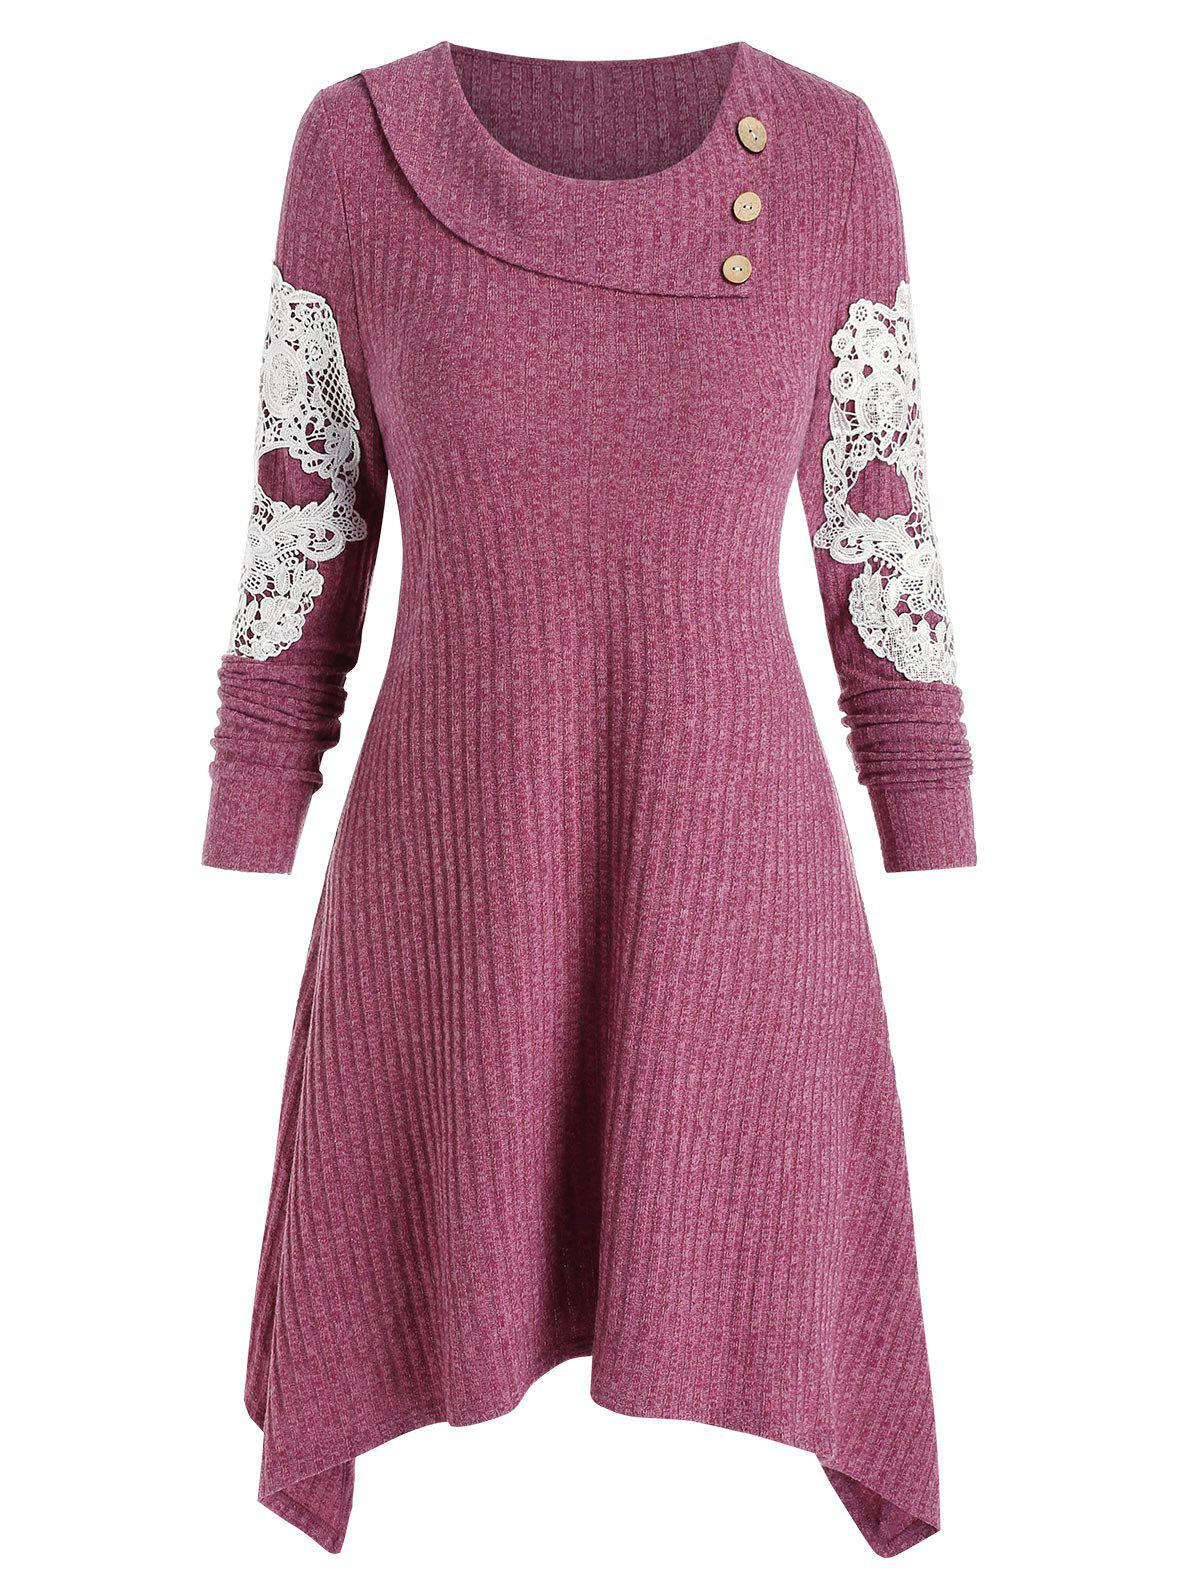 Applique Embroidered Skull Buttons Knitted Dress - LIPSTICK PINK 2XL